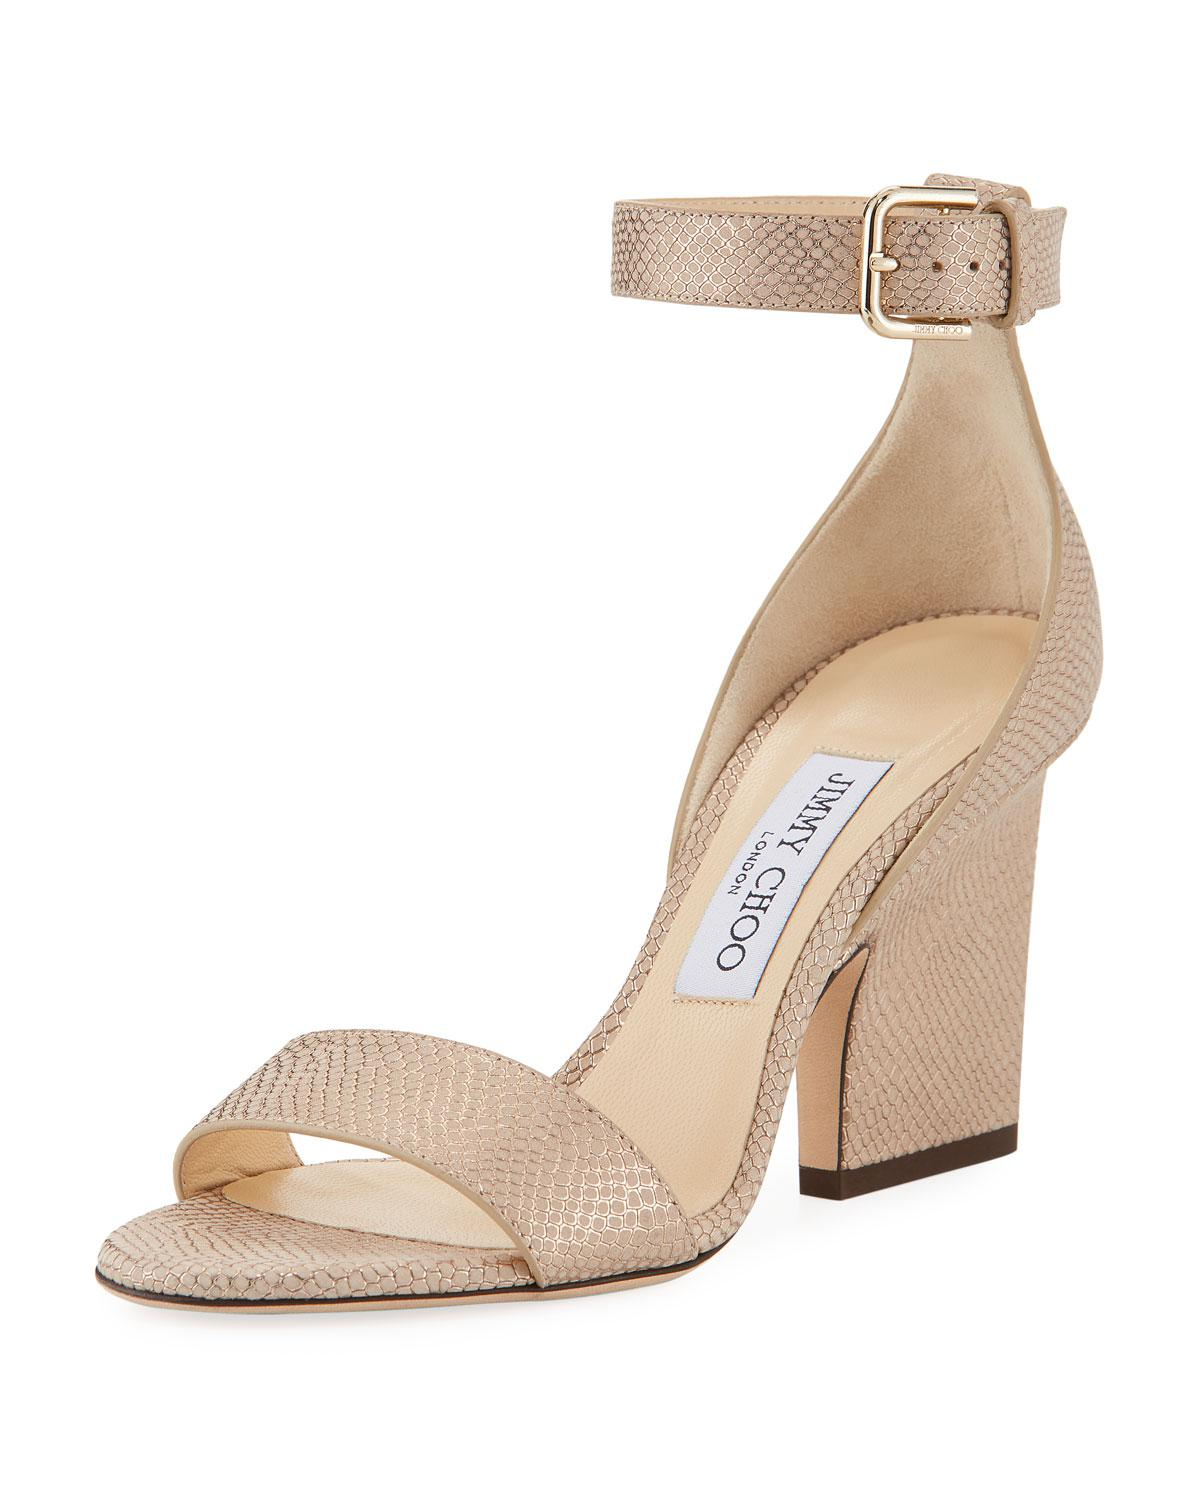 Mischa woven sandals - Metallic Jimmy Choo London